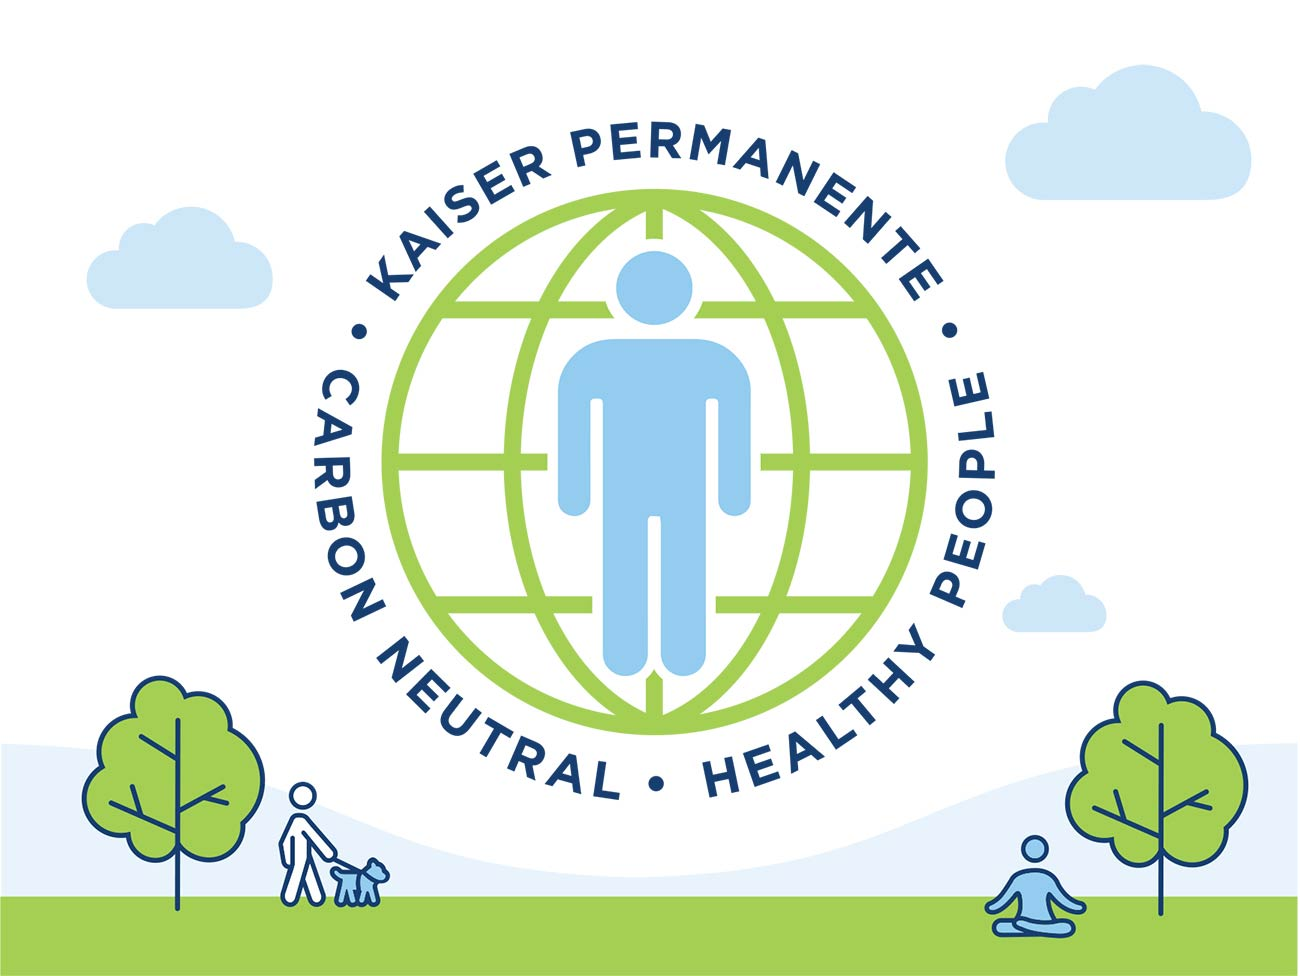 Kaiser Permanente Carbon Neutral Healthy People